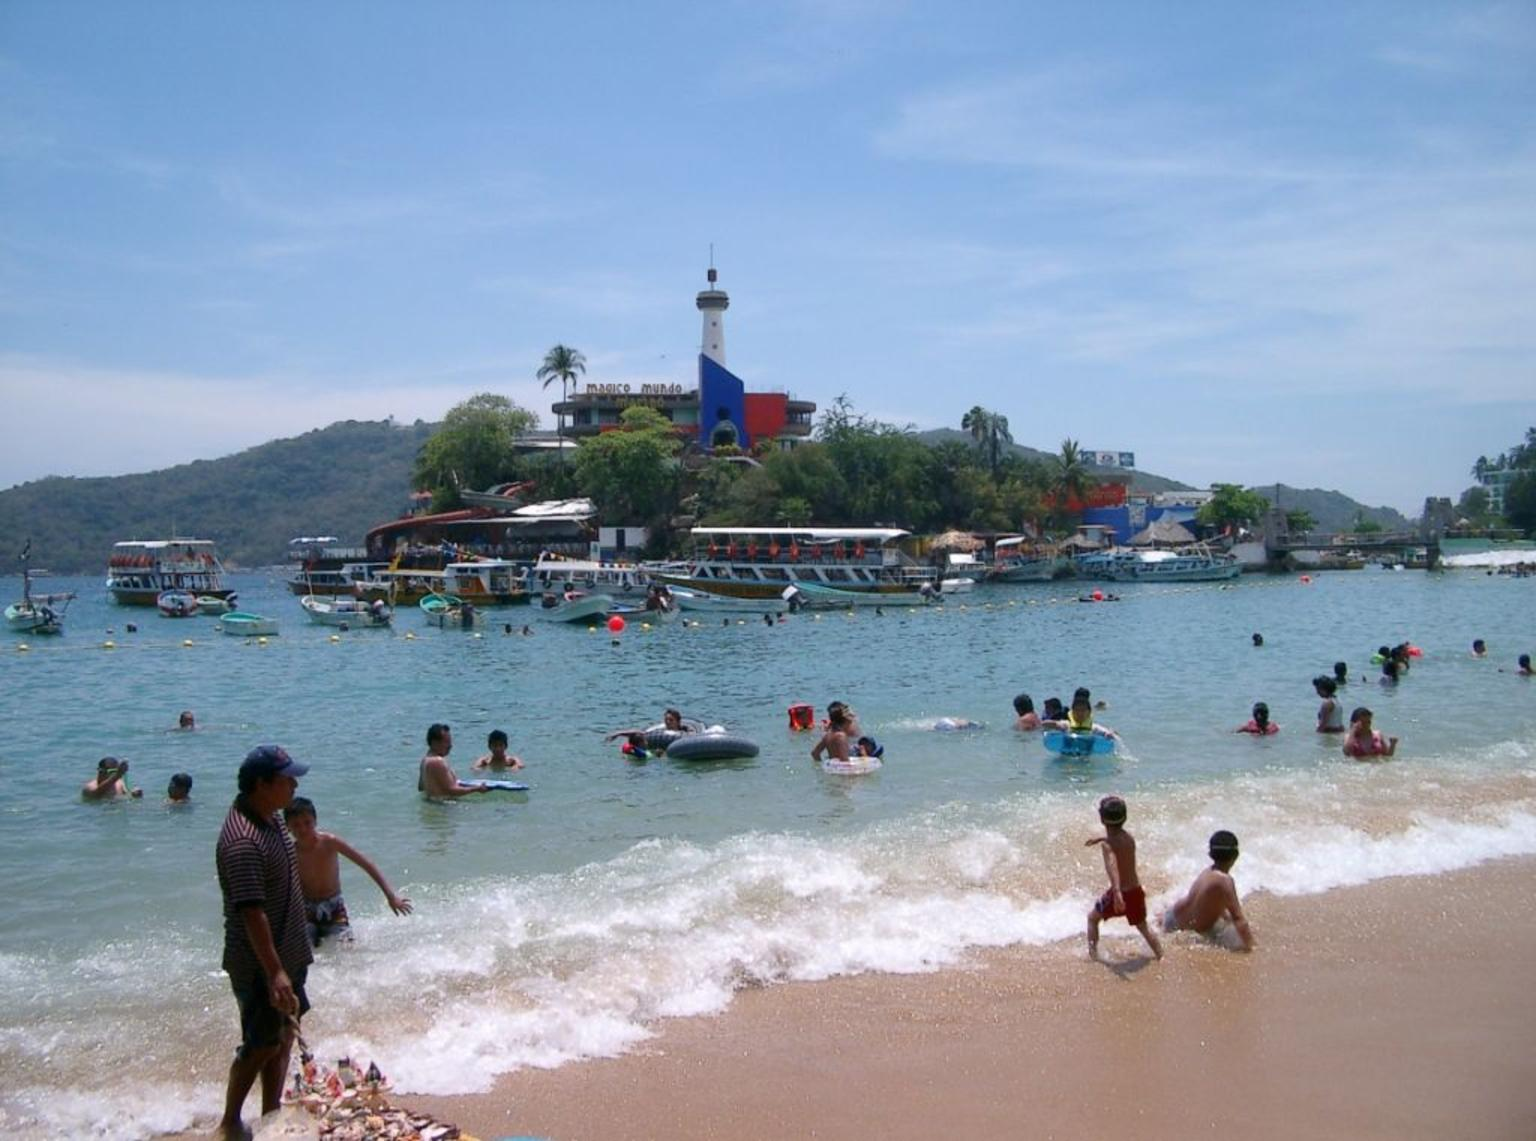 Acapulco Shore Excursion: All-Inclusive City Sightseeing Tour and Baby Turtle Release